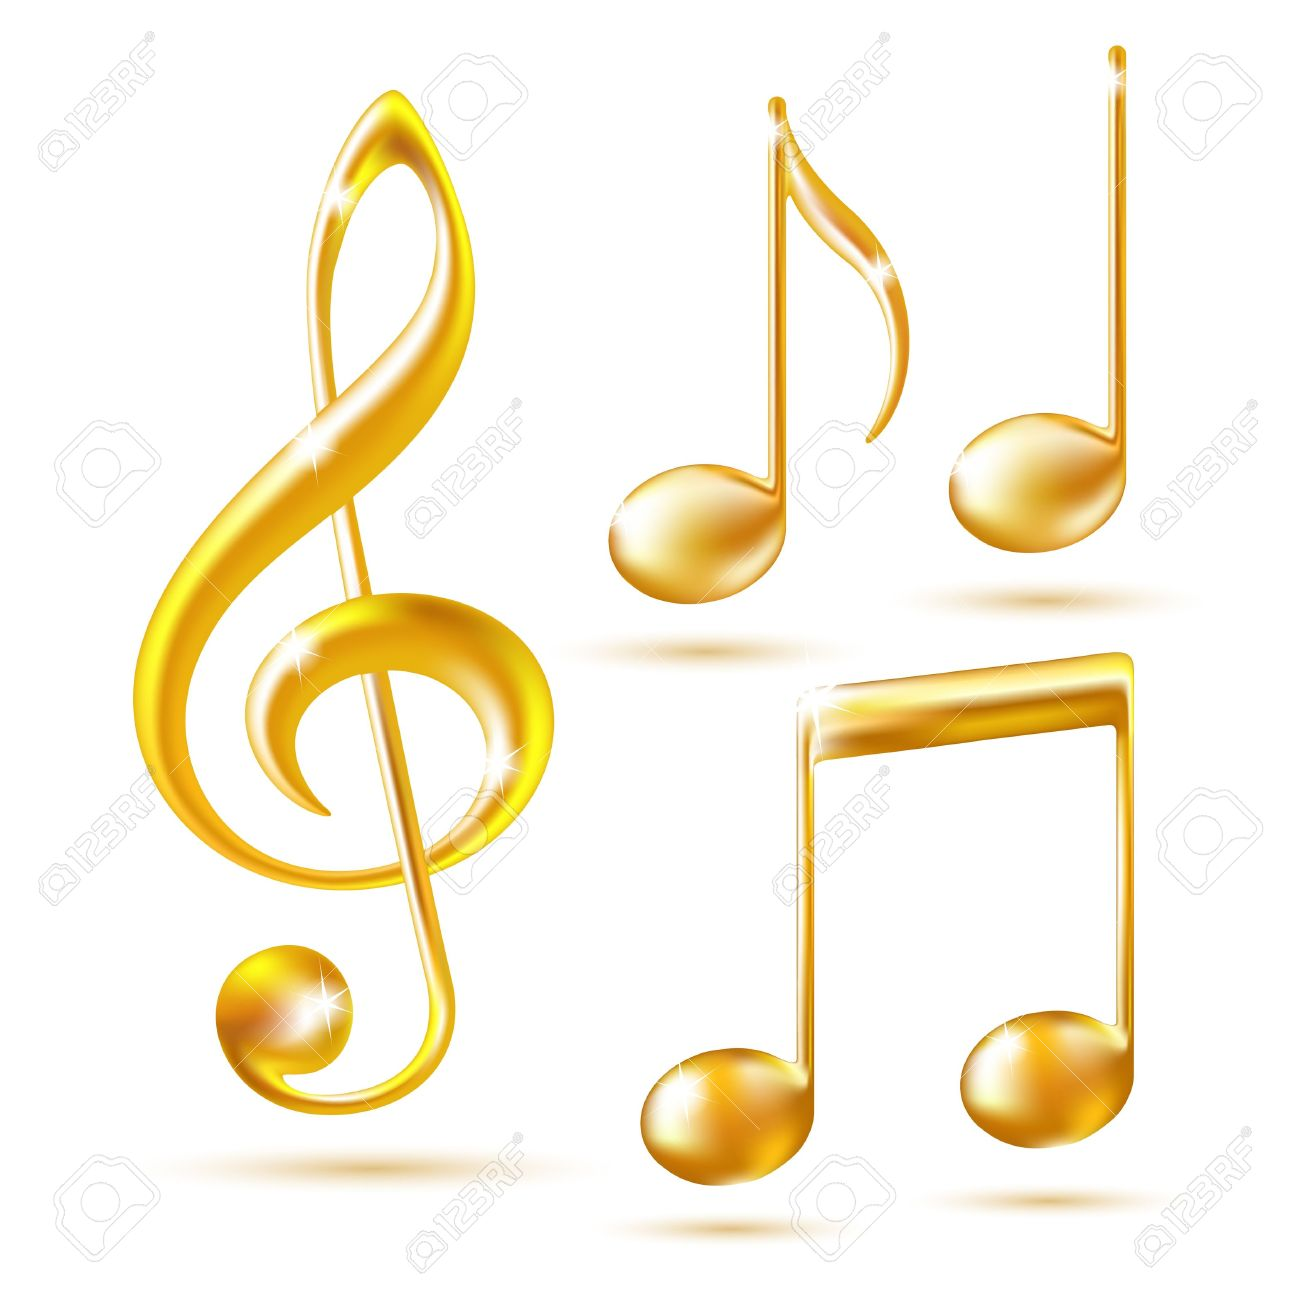 83 238 music notes stock illustrations cliparts and royalty free